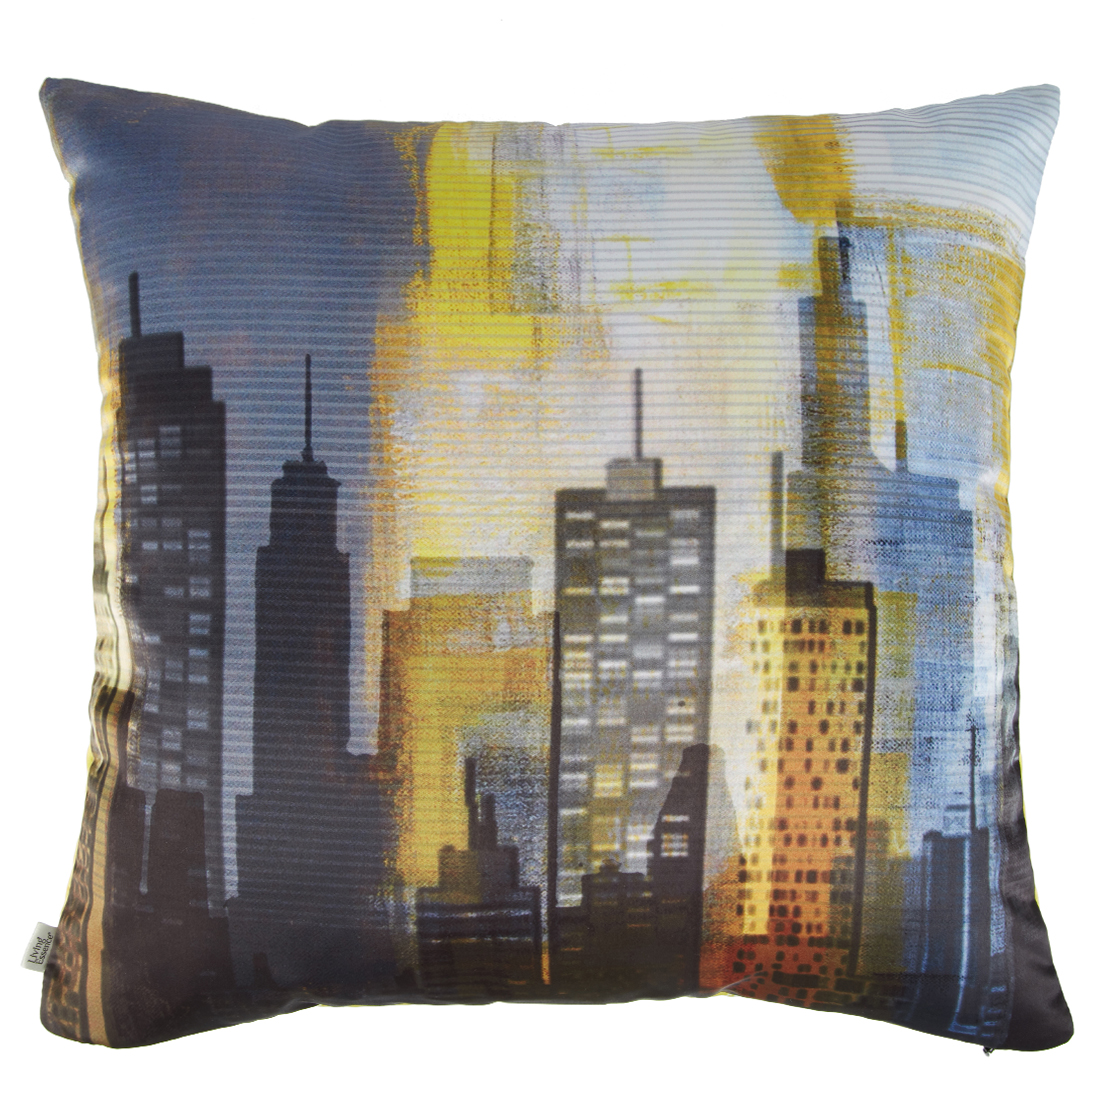 Digital Cushion Cover Skyline Cushion Covers in Poly Satin Colour by Living Essence